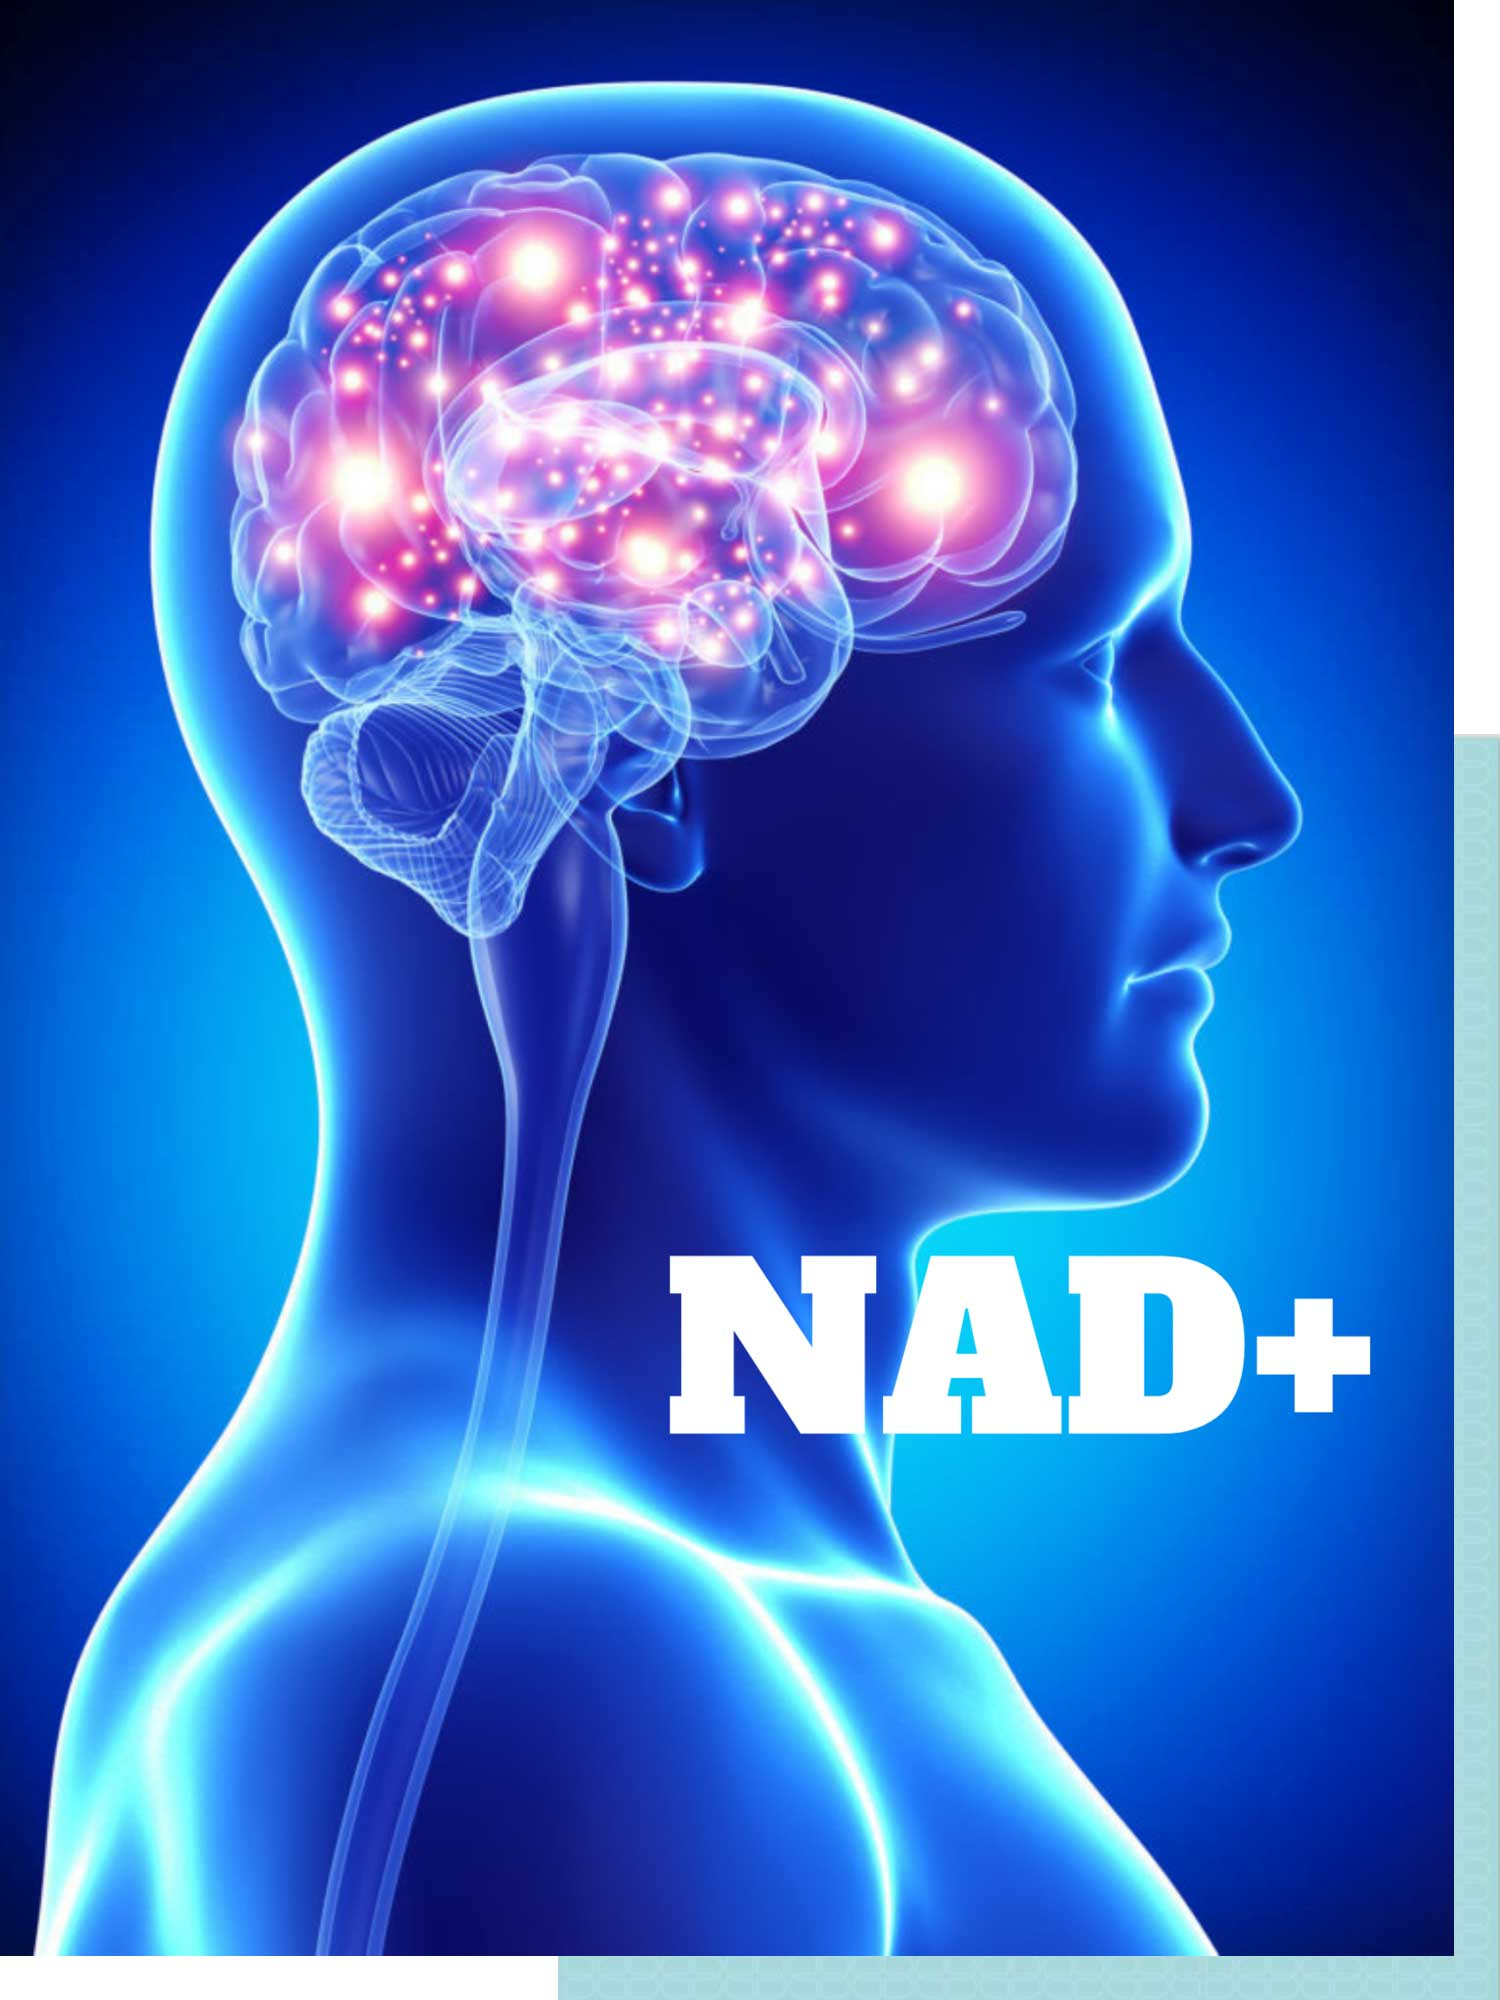 More information about NAD